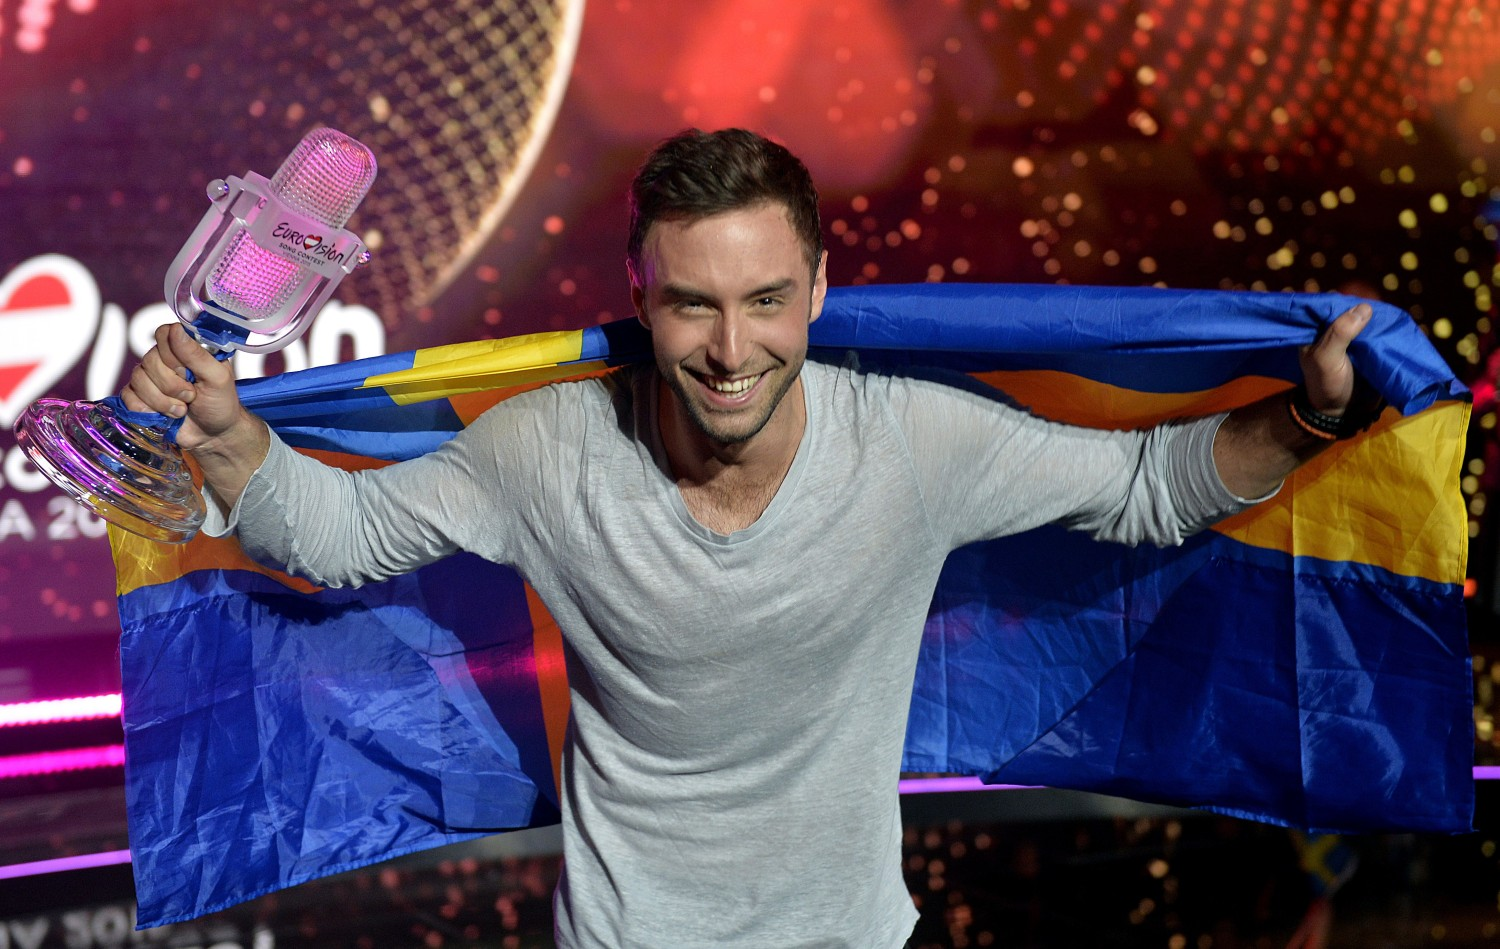 Sweden's Mans Zelmerlow reacts after winning the Eurovision Song Contest final on May 23, 2015 in Vienna.   AFP PHOTO / SAMUEL KUBANI        (Photo credit should read SAMUEL KUBANI/AFP/Getty Images)